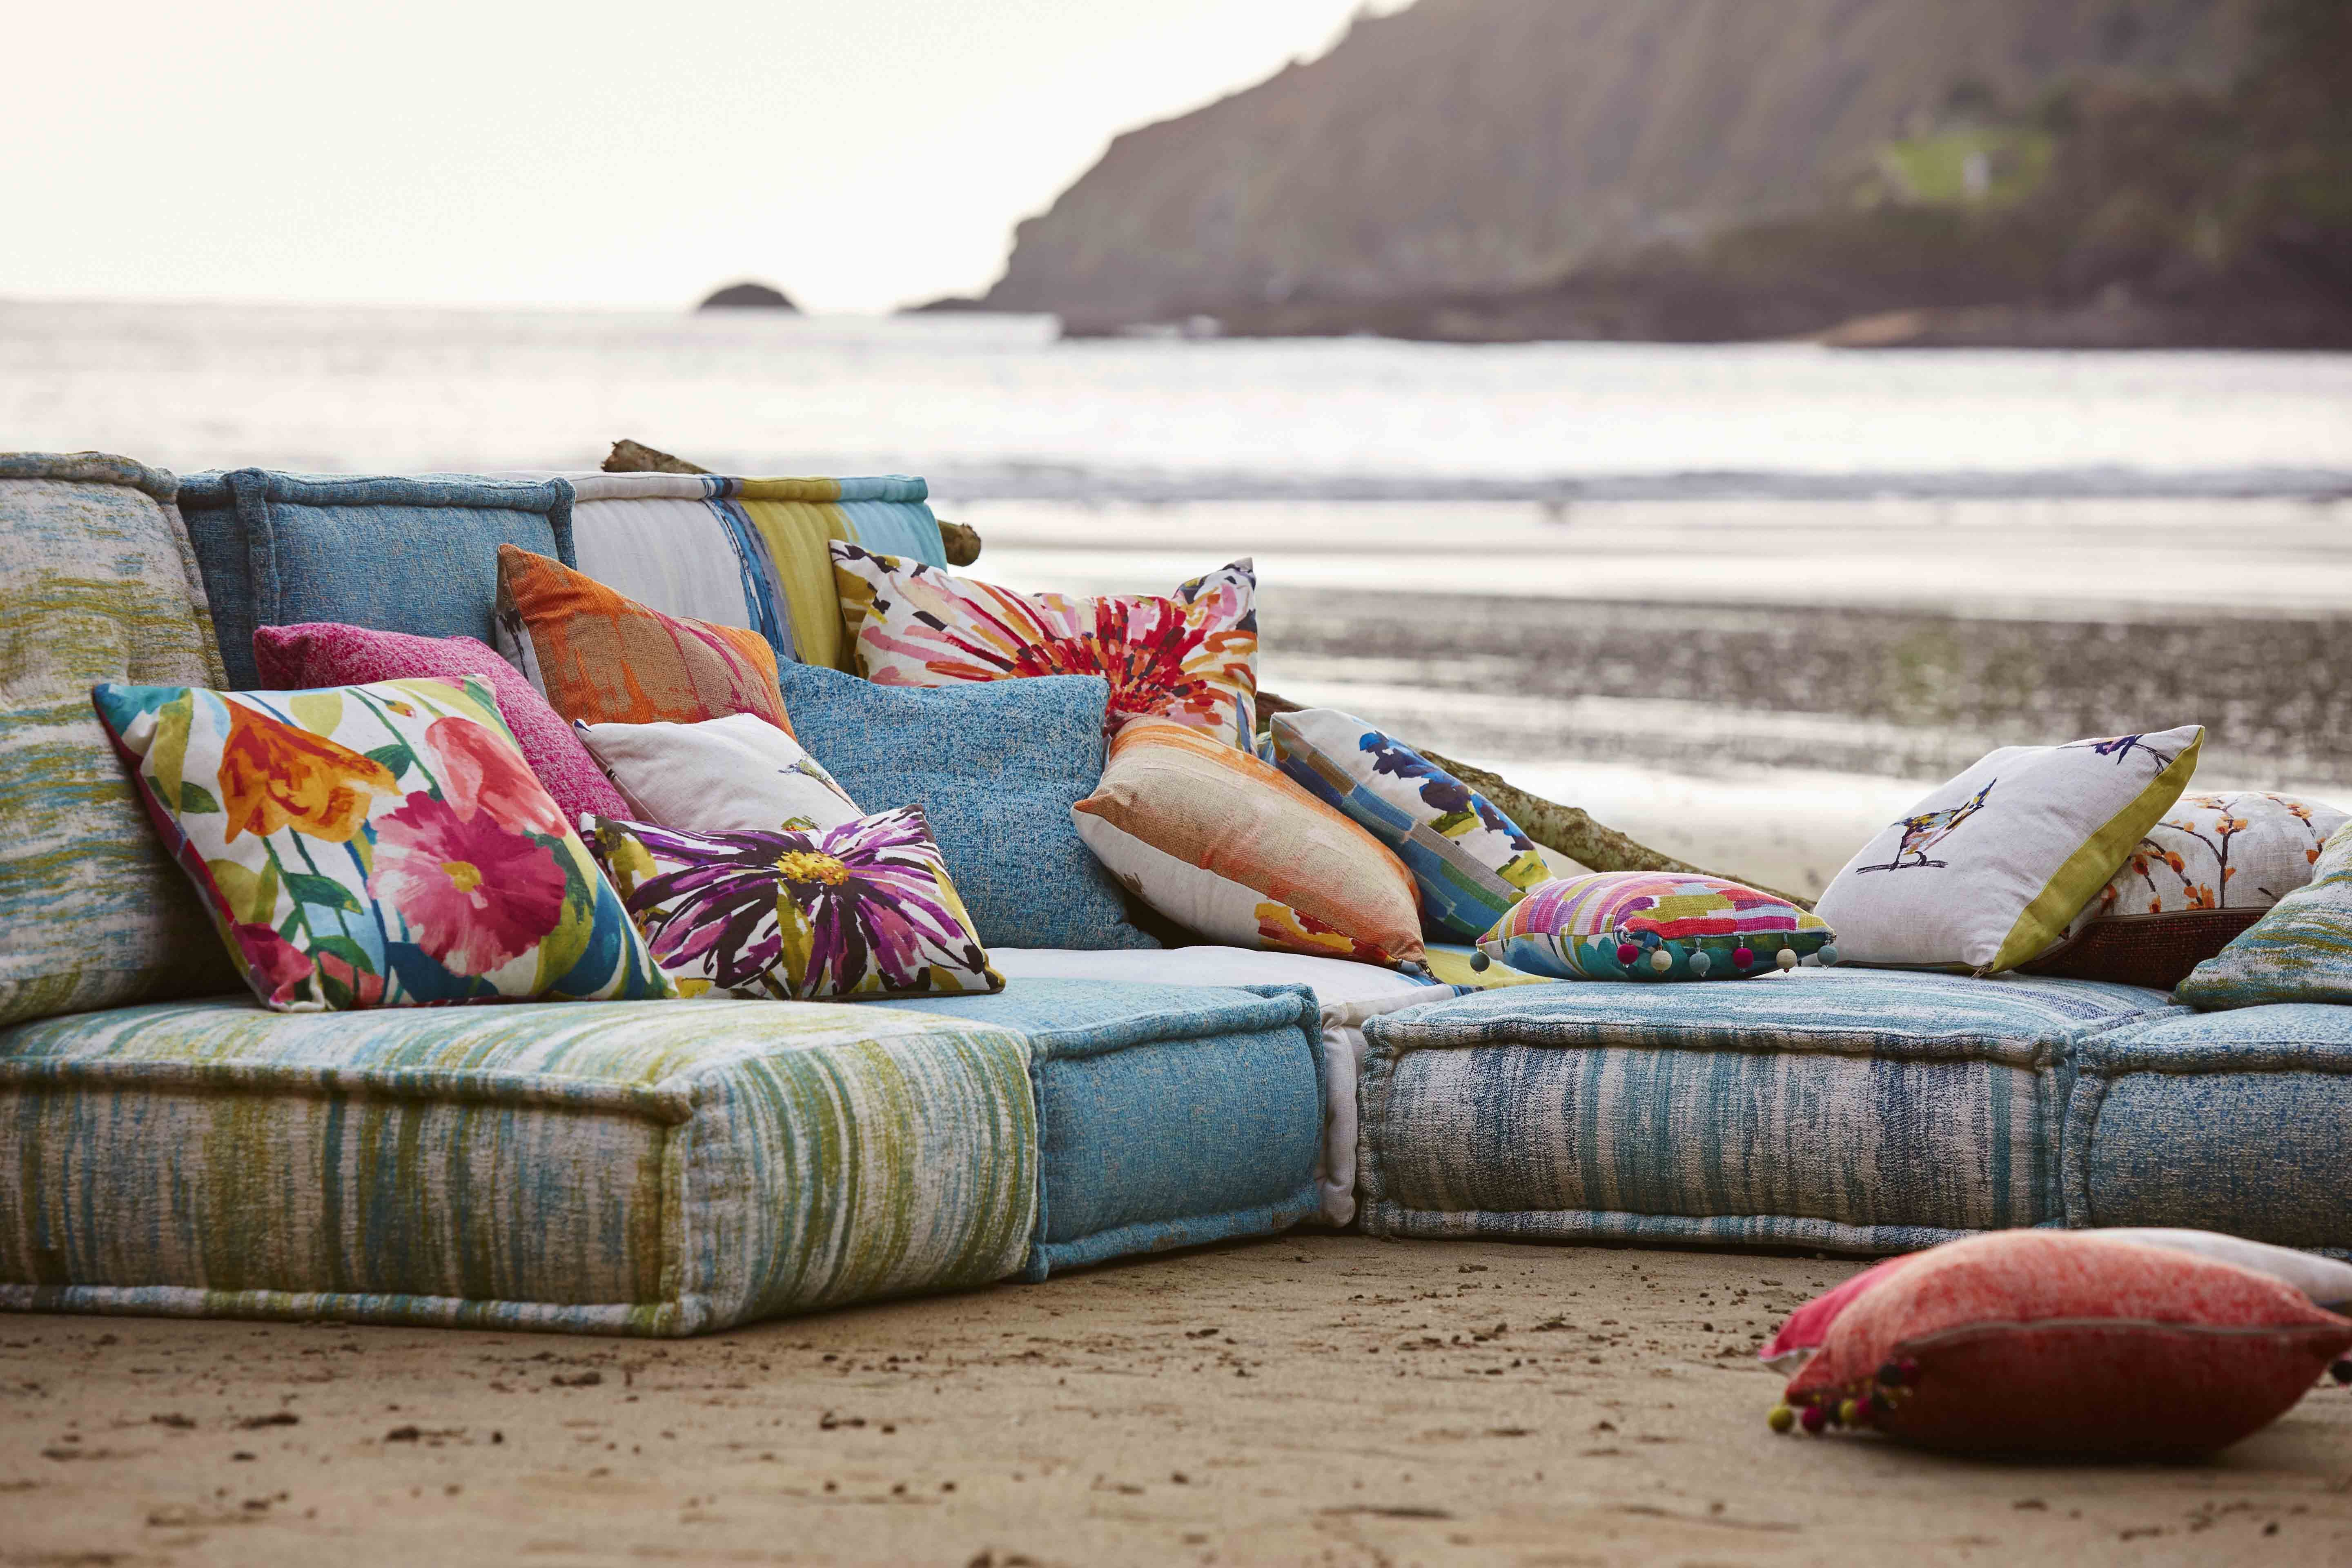 Fauvisimo Collection by Harlequin. #interiordesign #harlequin #fauvisimo #fabric #malcolmfabrics